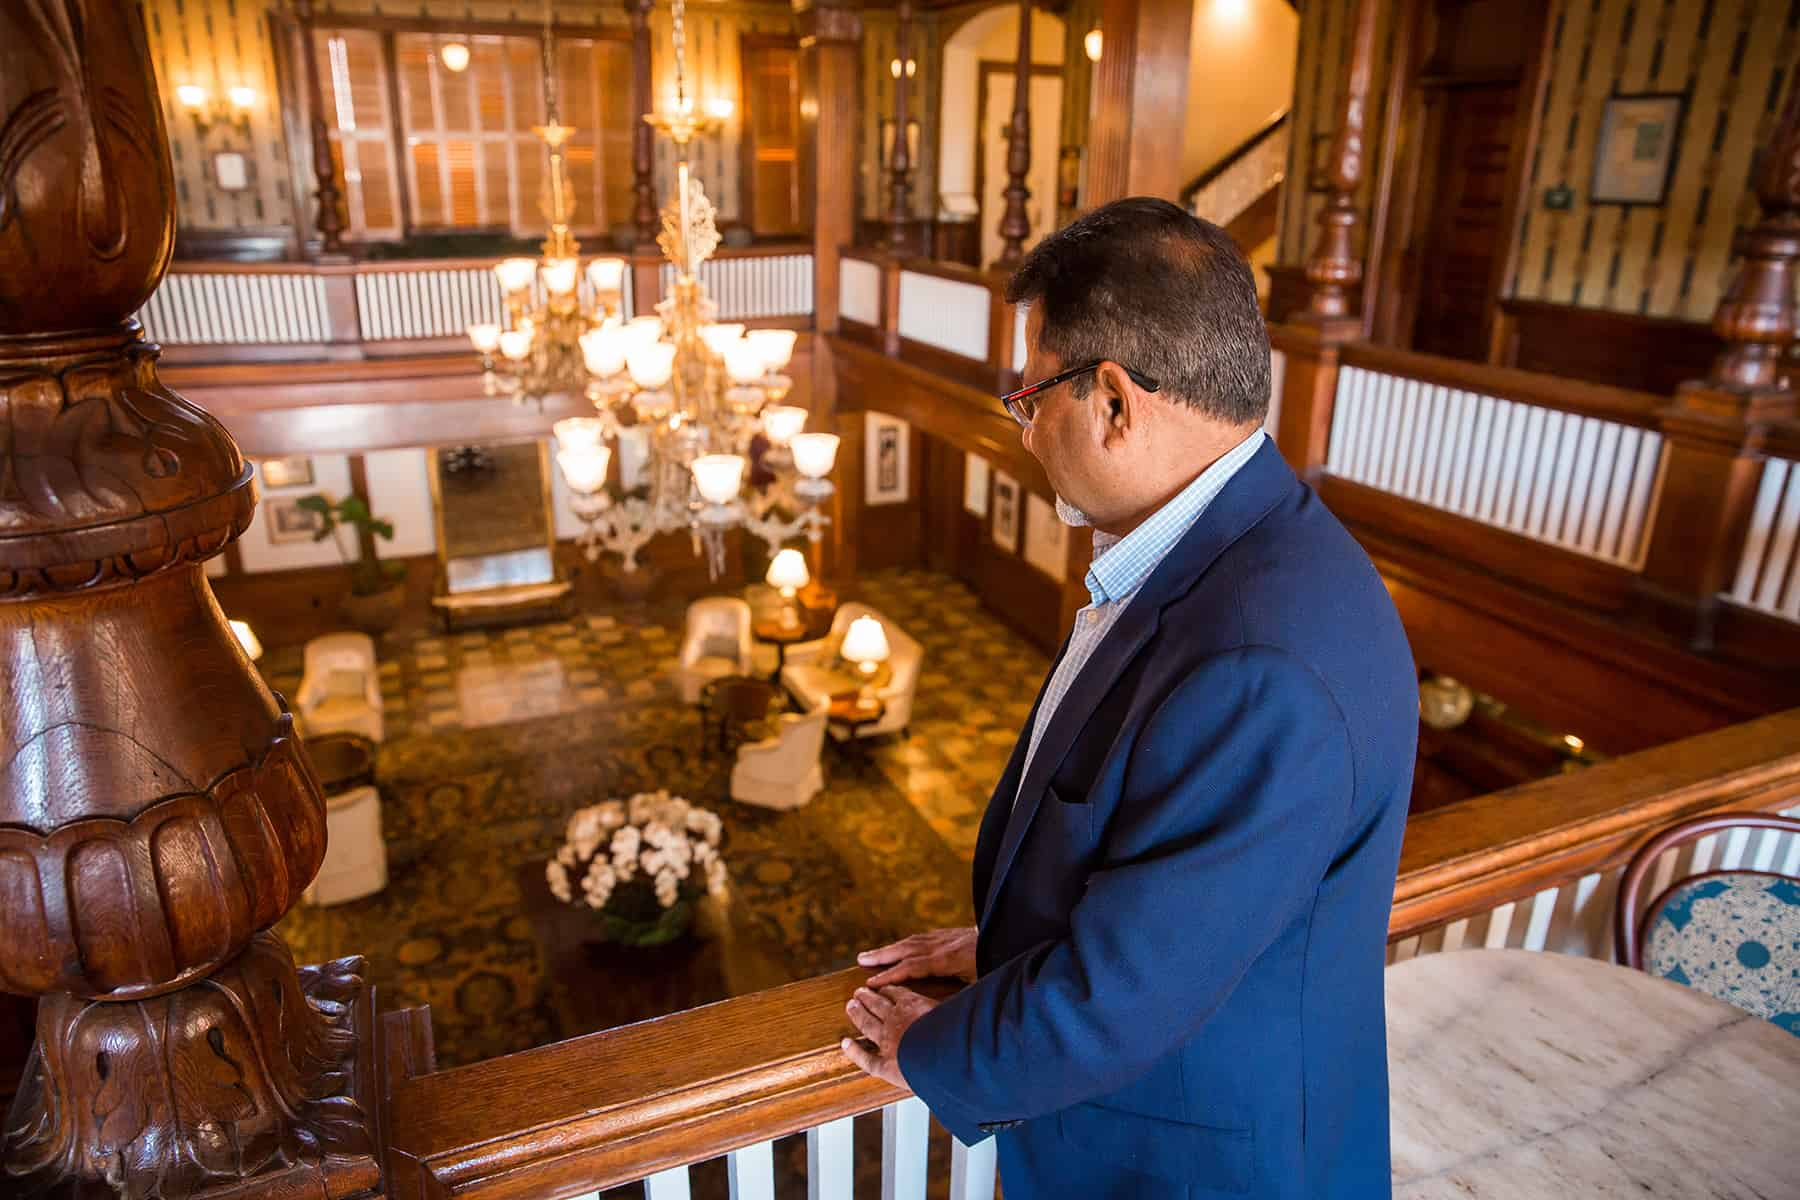 Sharad Patel looking down into the lobby of the Windsor Hotel.